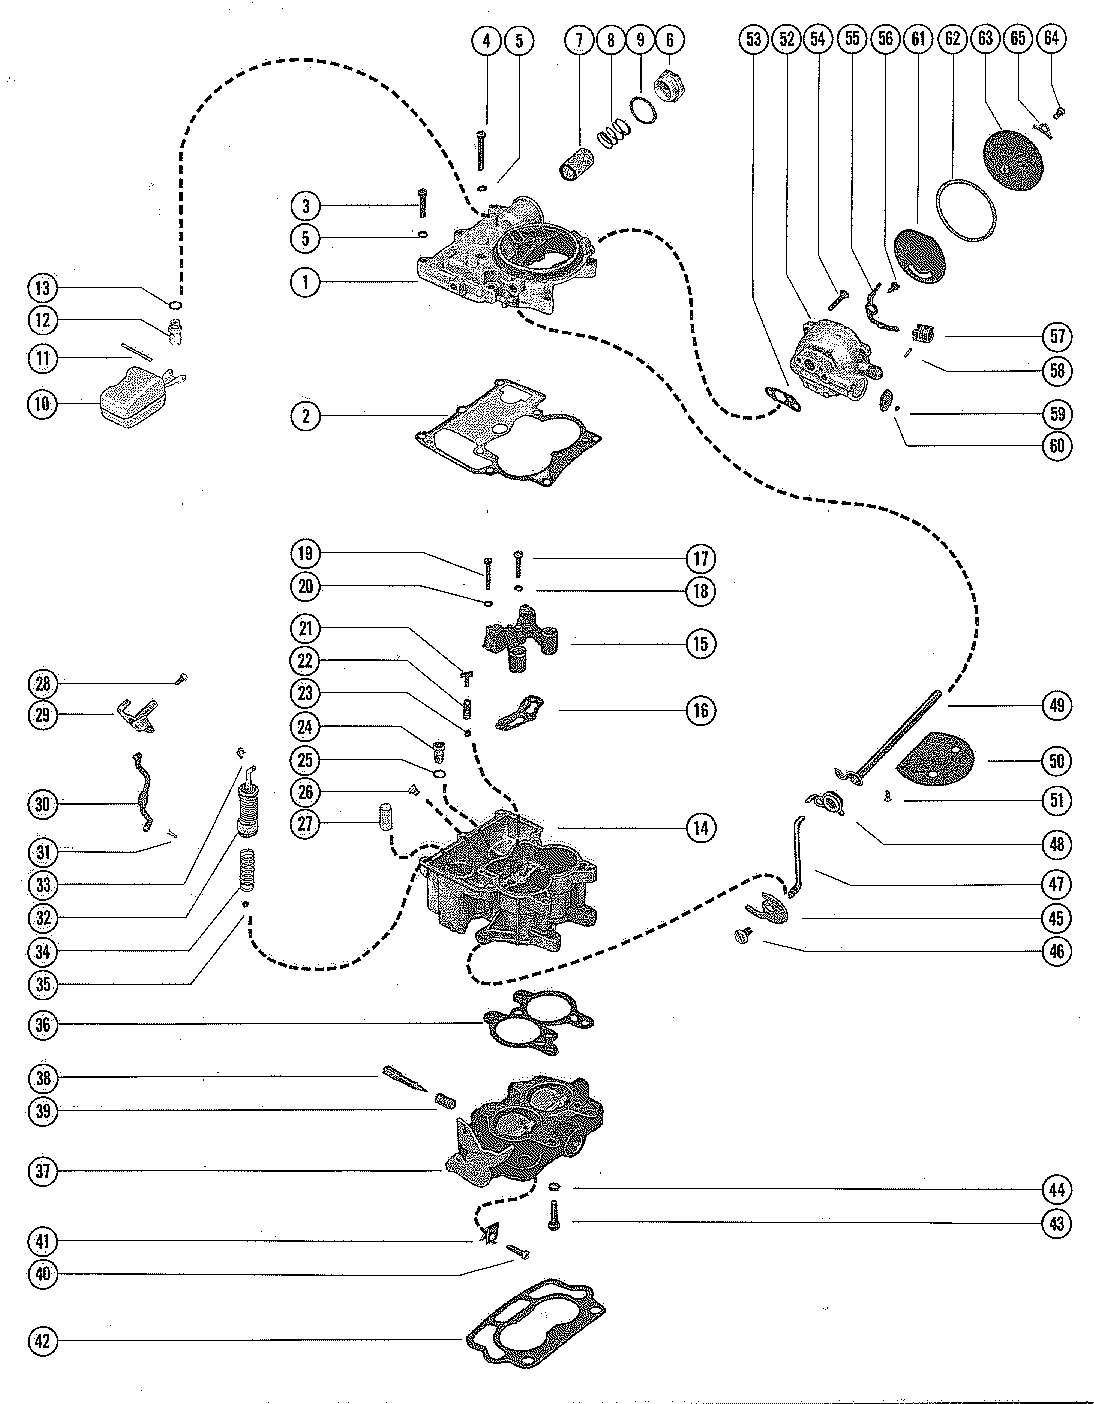 mercruiser 120 carburetor diagram